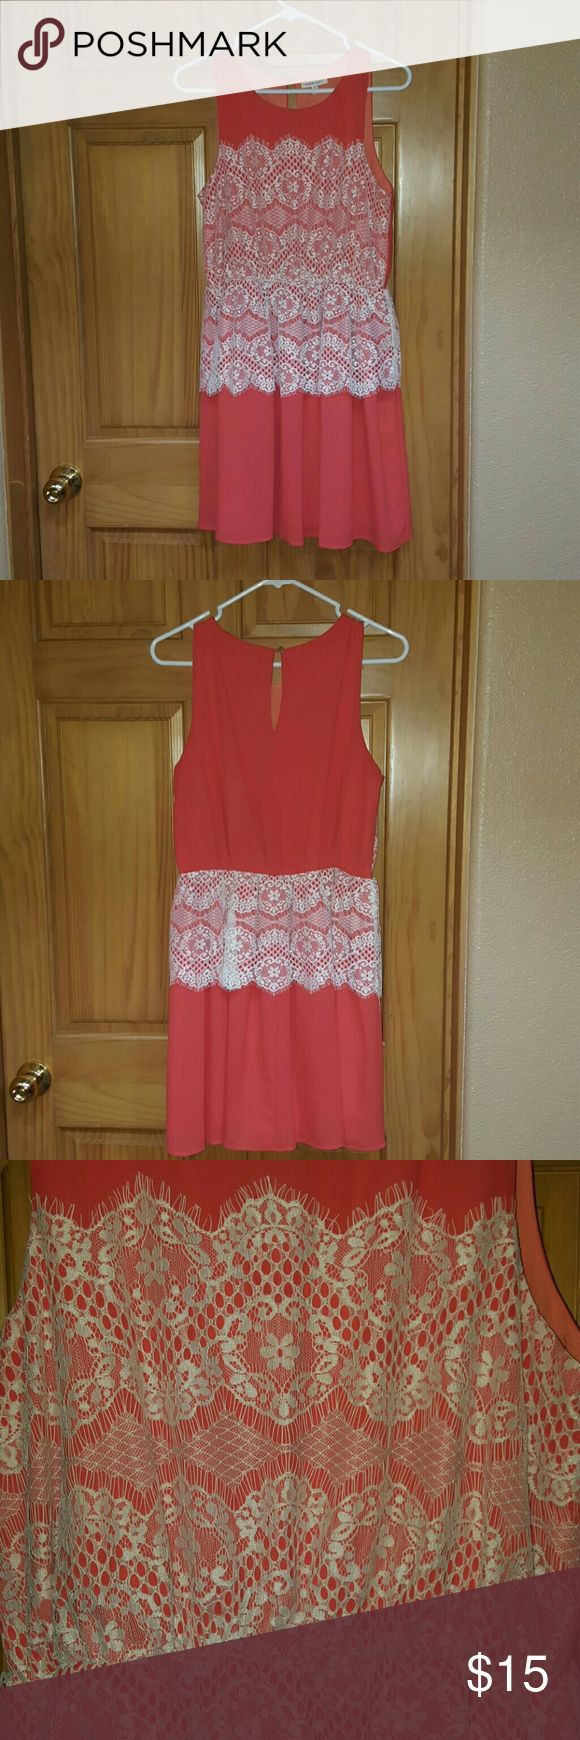 Pretty coral & lace dress! Very pretty coral and lace dress. Elastic waist so the dress cinches your waist when on. Keyhole button on back. Can dress up or down. Looks great belted. under skies Dresses